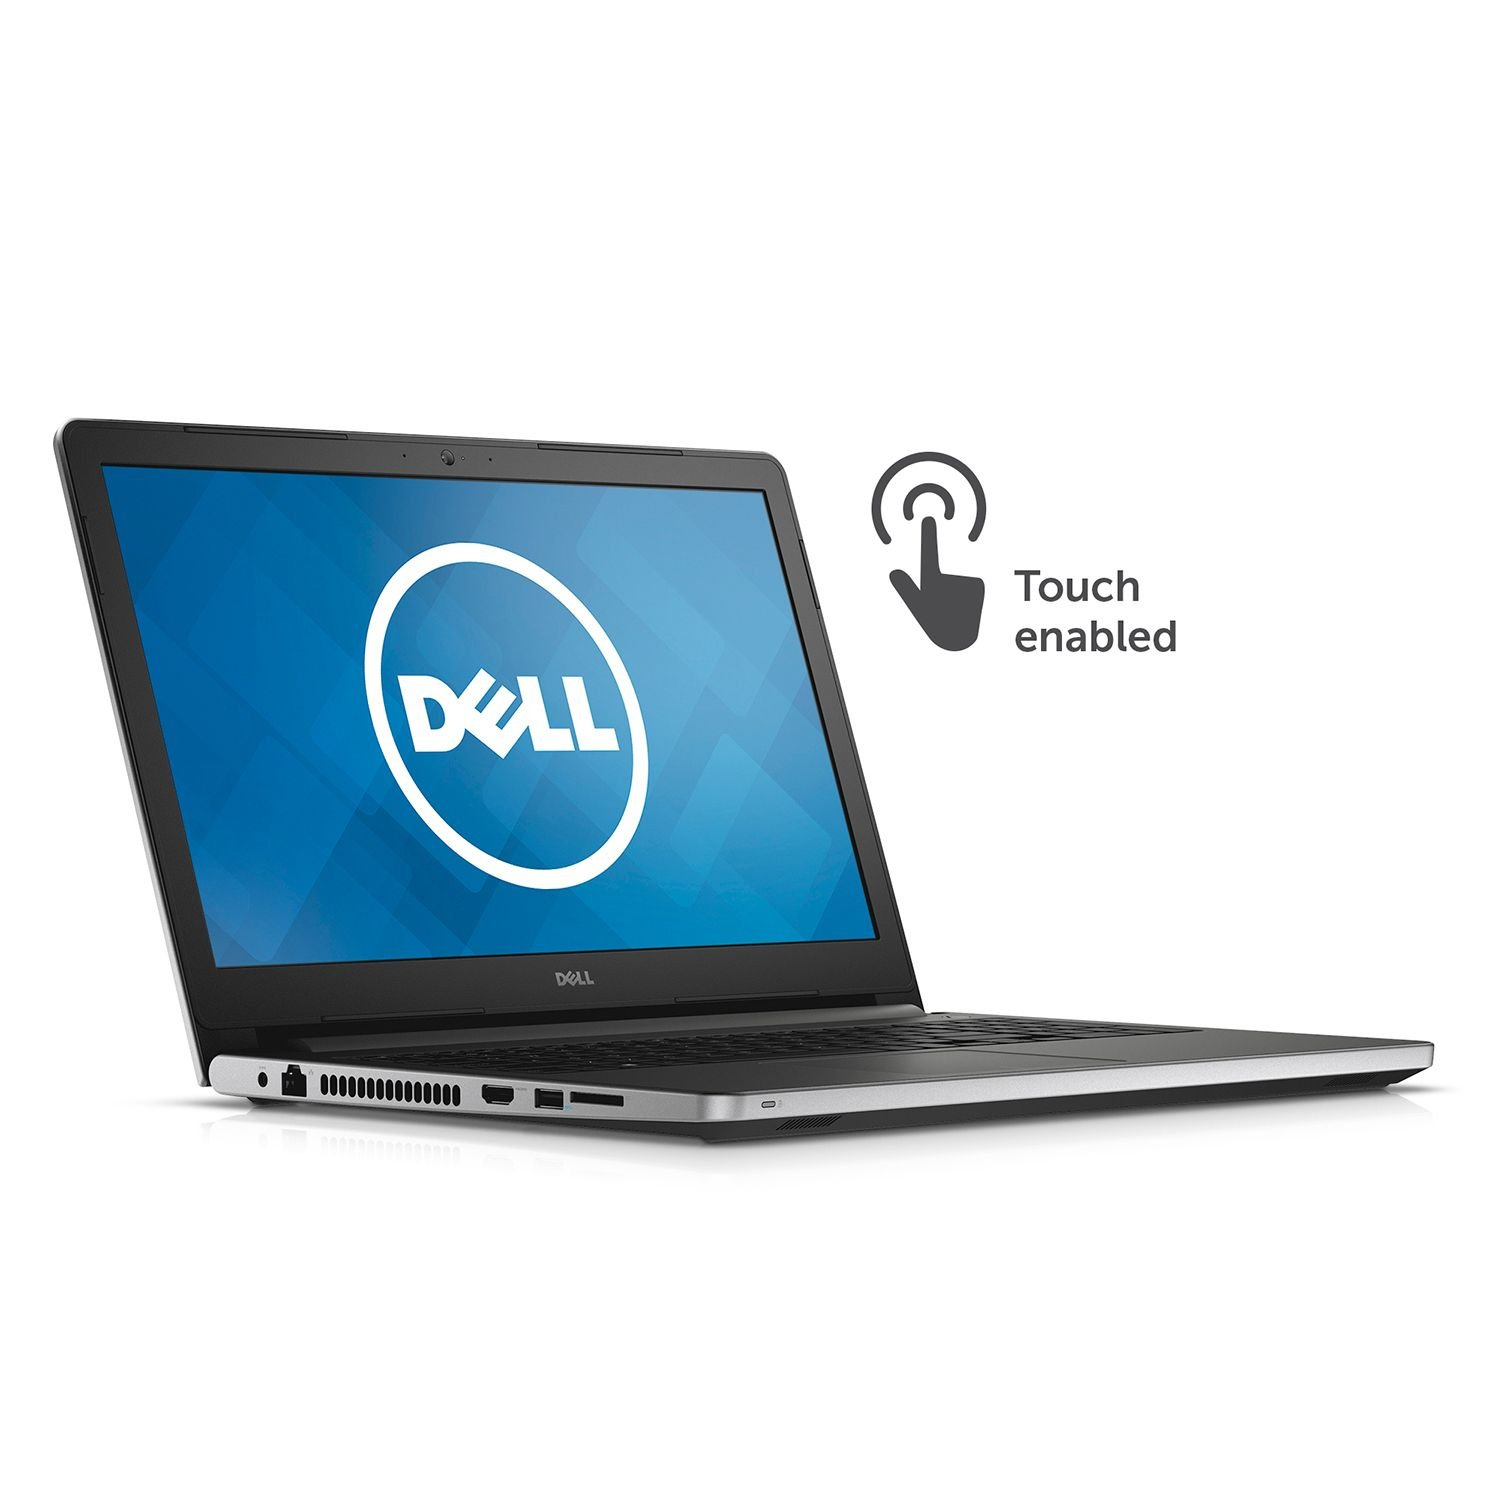 2 in 1 laptop: Dell Inspiron 15 5000 15.6-Inch Touchscreen Laptop